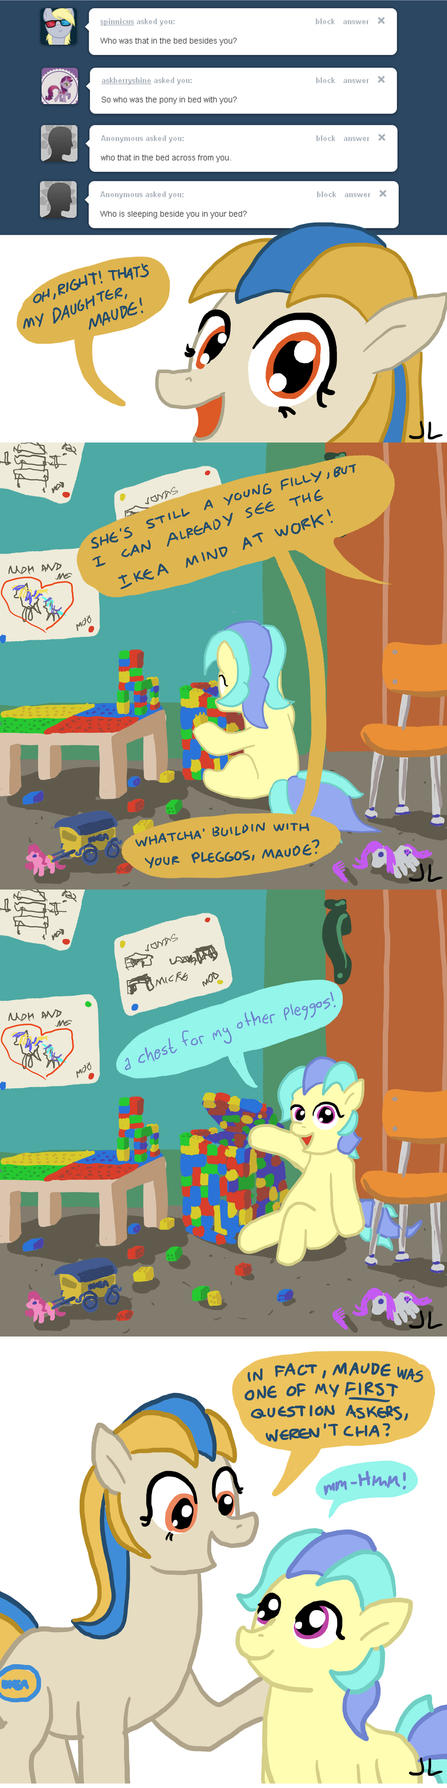 Ask Pia Ikea 10 by DocWario